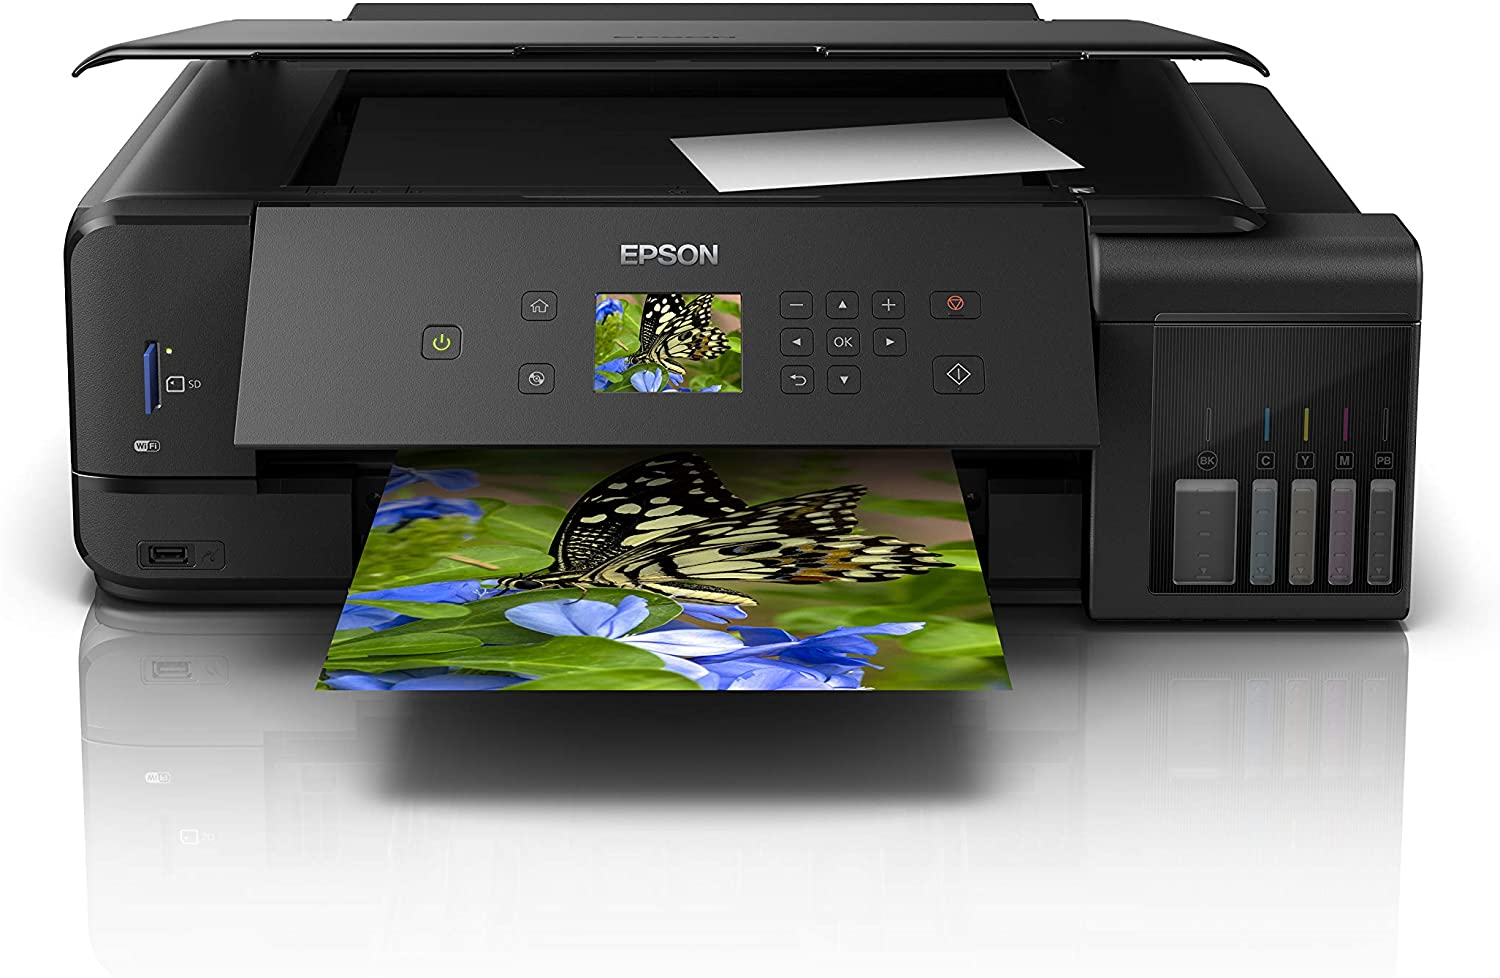 Epson EcoTank ET-7750 A3 Print Scan Copy Wi-Fi Photo Printer uk reviews